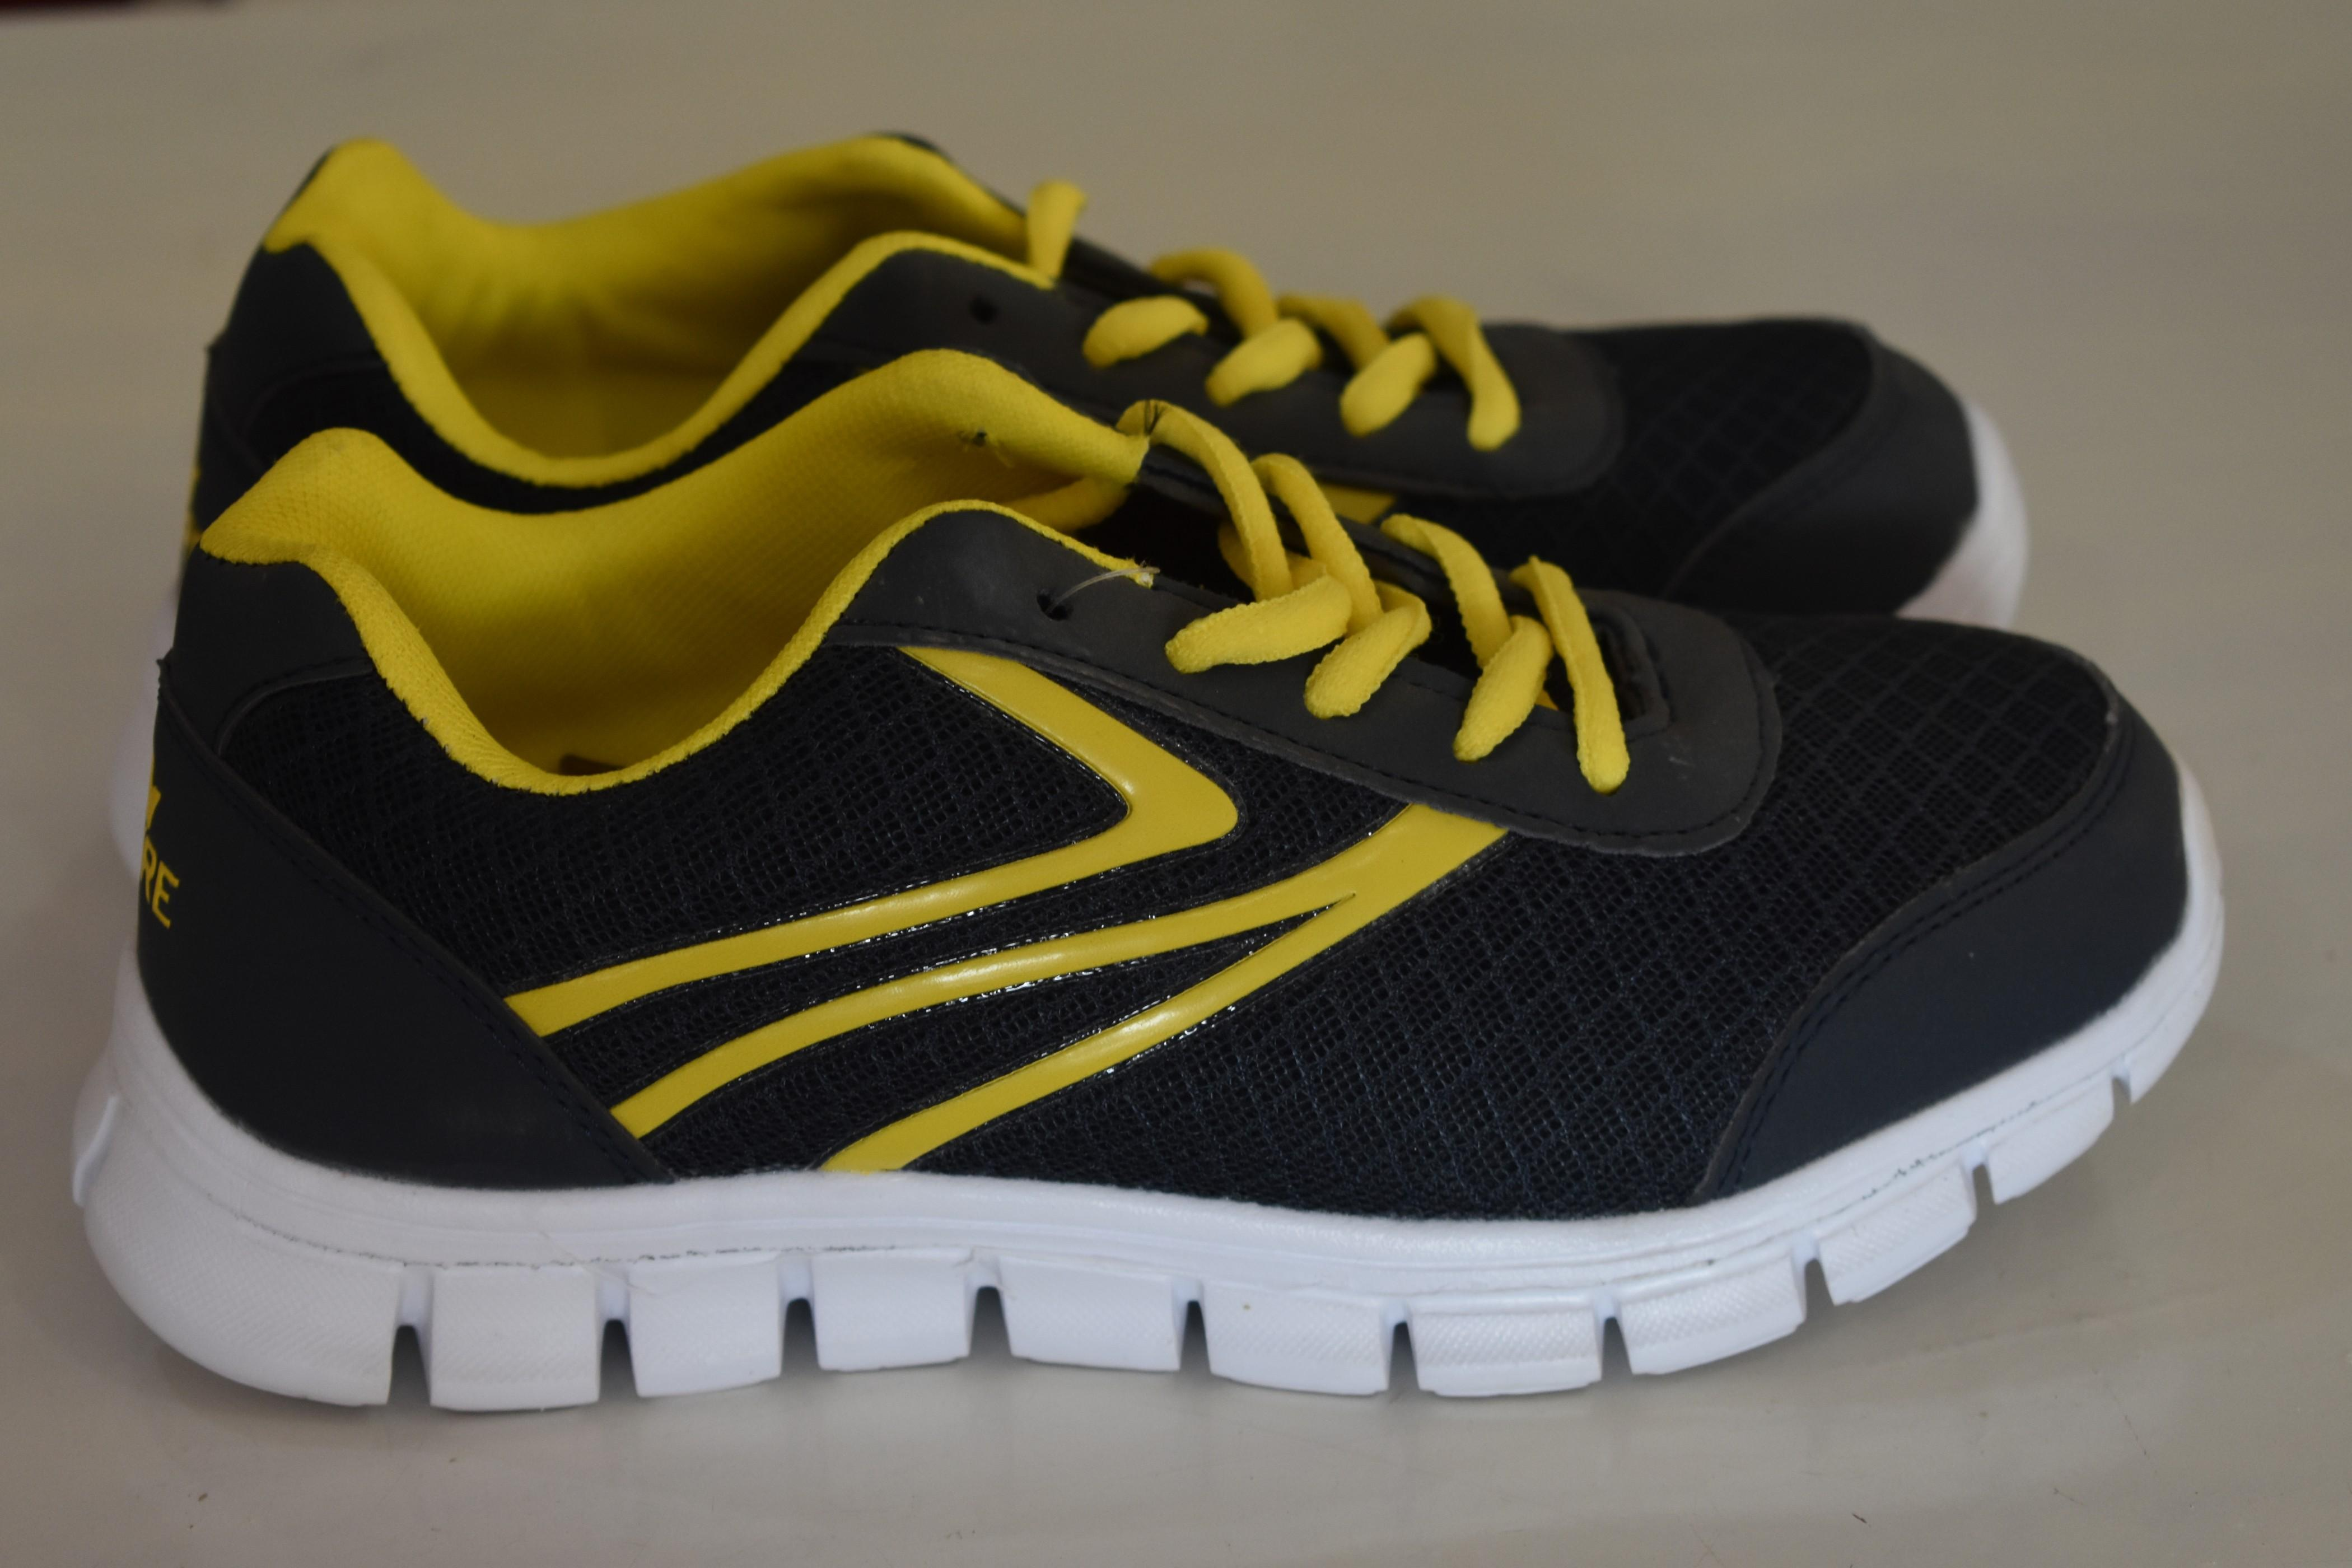 Sneakers Buy Sneakers at Best Price in Pakistan daraz.pk  daraz.pk